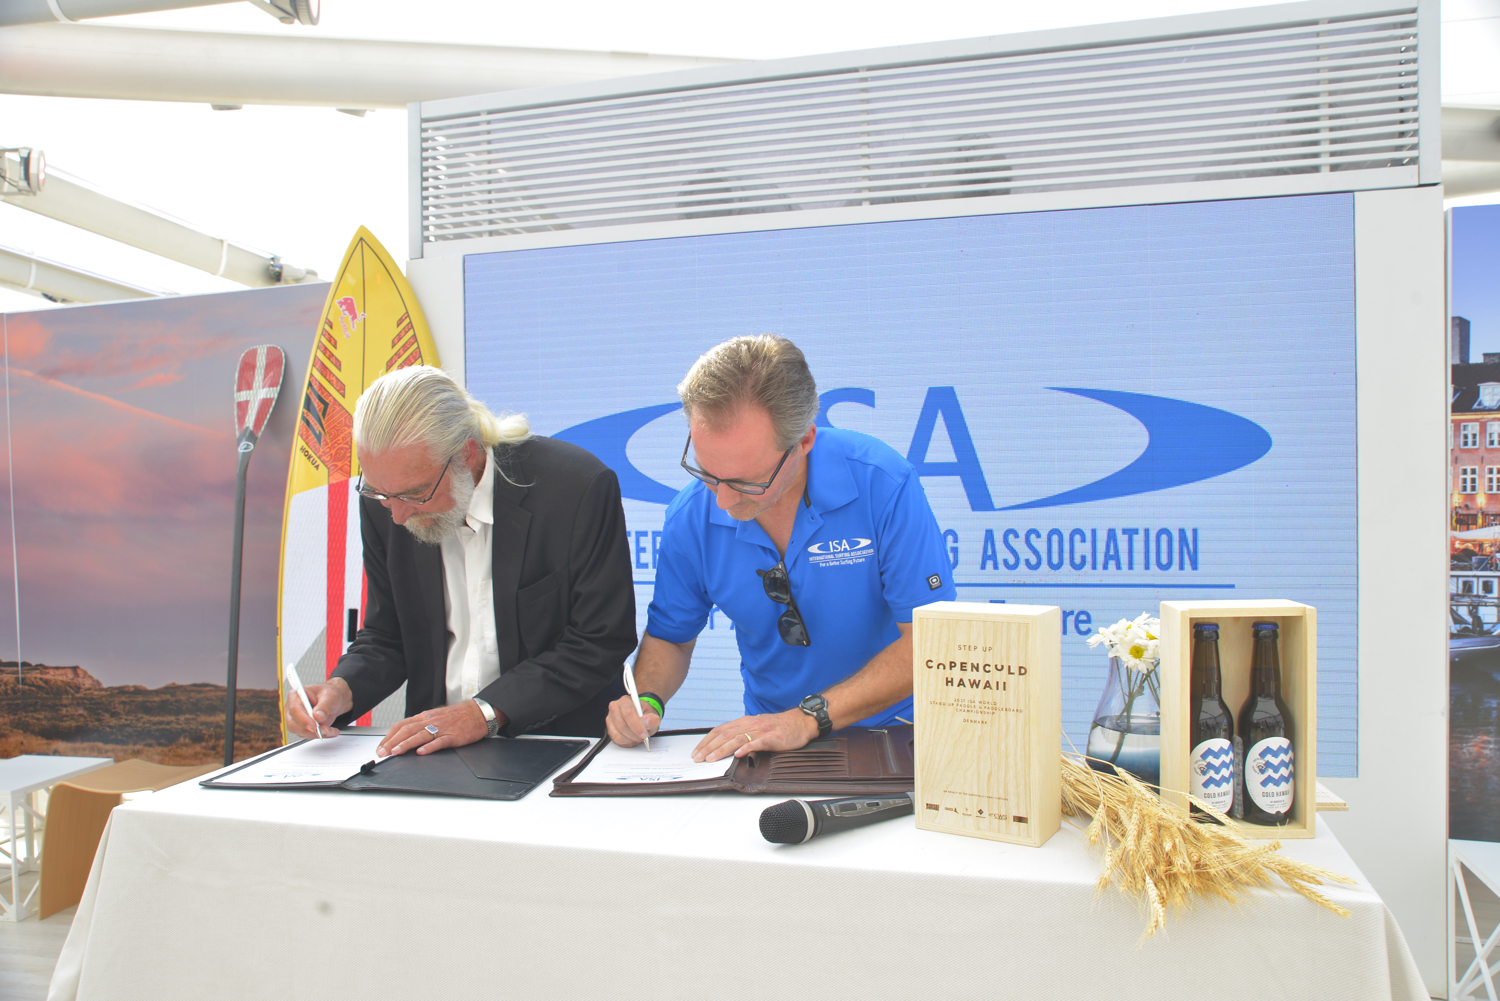 Finn Jorsal (left), president of Friends of Cold Hawaii, and Robert Fasulo (right), executive director, ISA, in the Danish National House in Rio, signing the COPENCOLD HAWAII – ISA World StandUp Paddle and Paddleboard Championship 2017 hosting agreement.